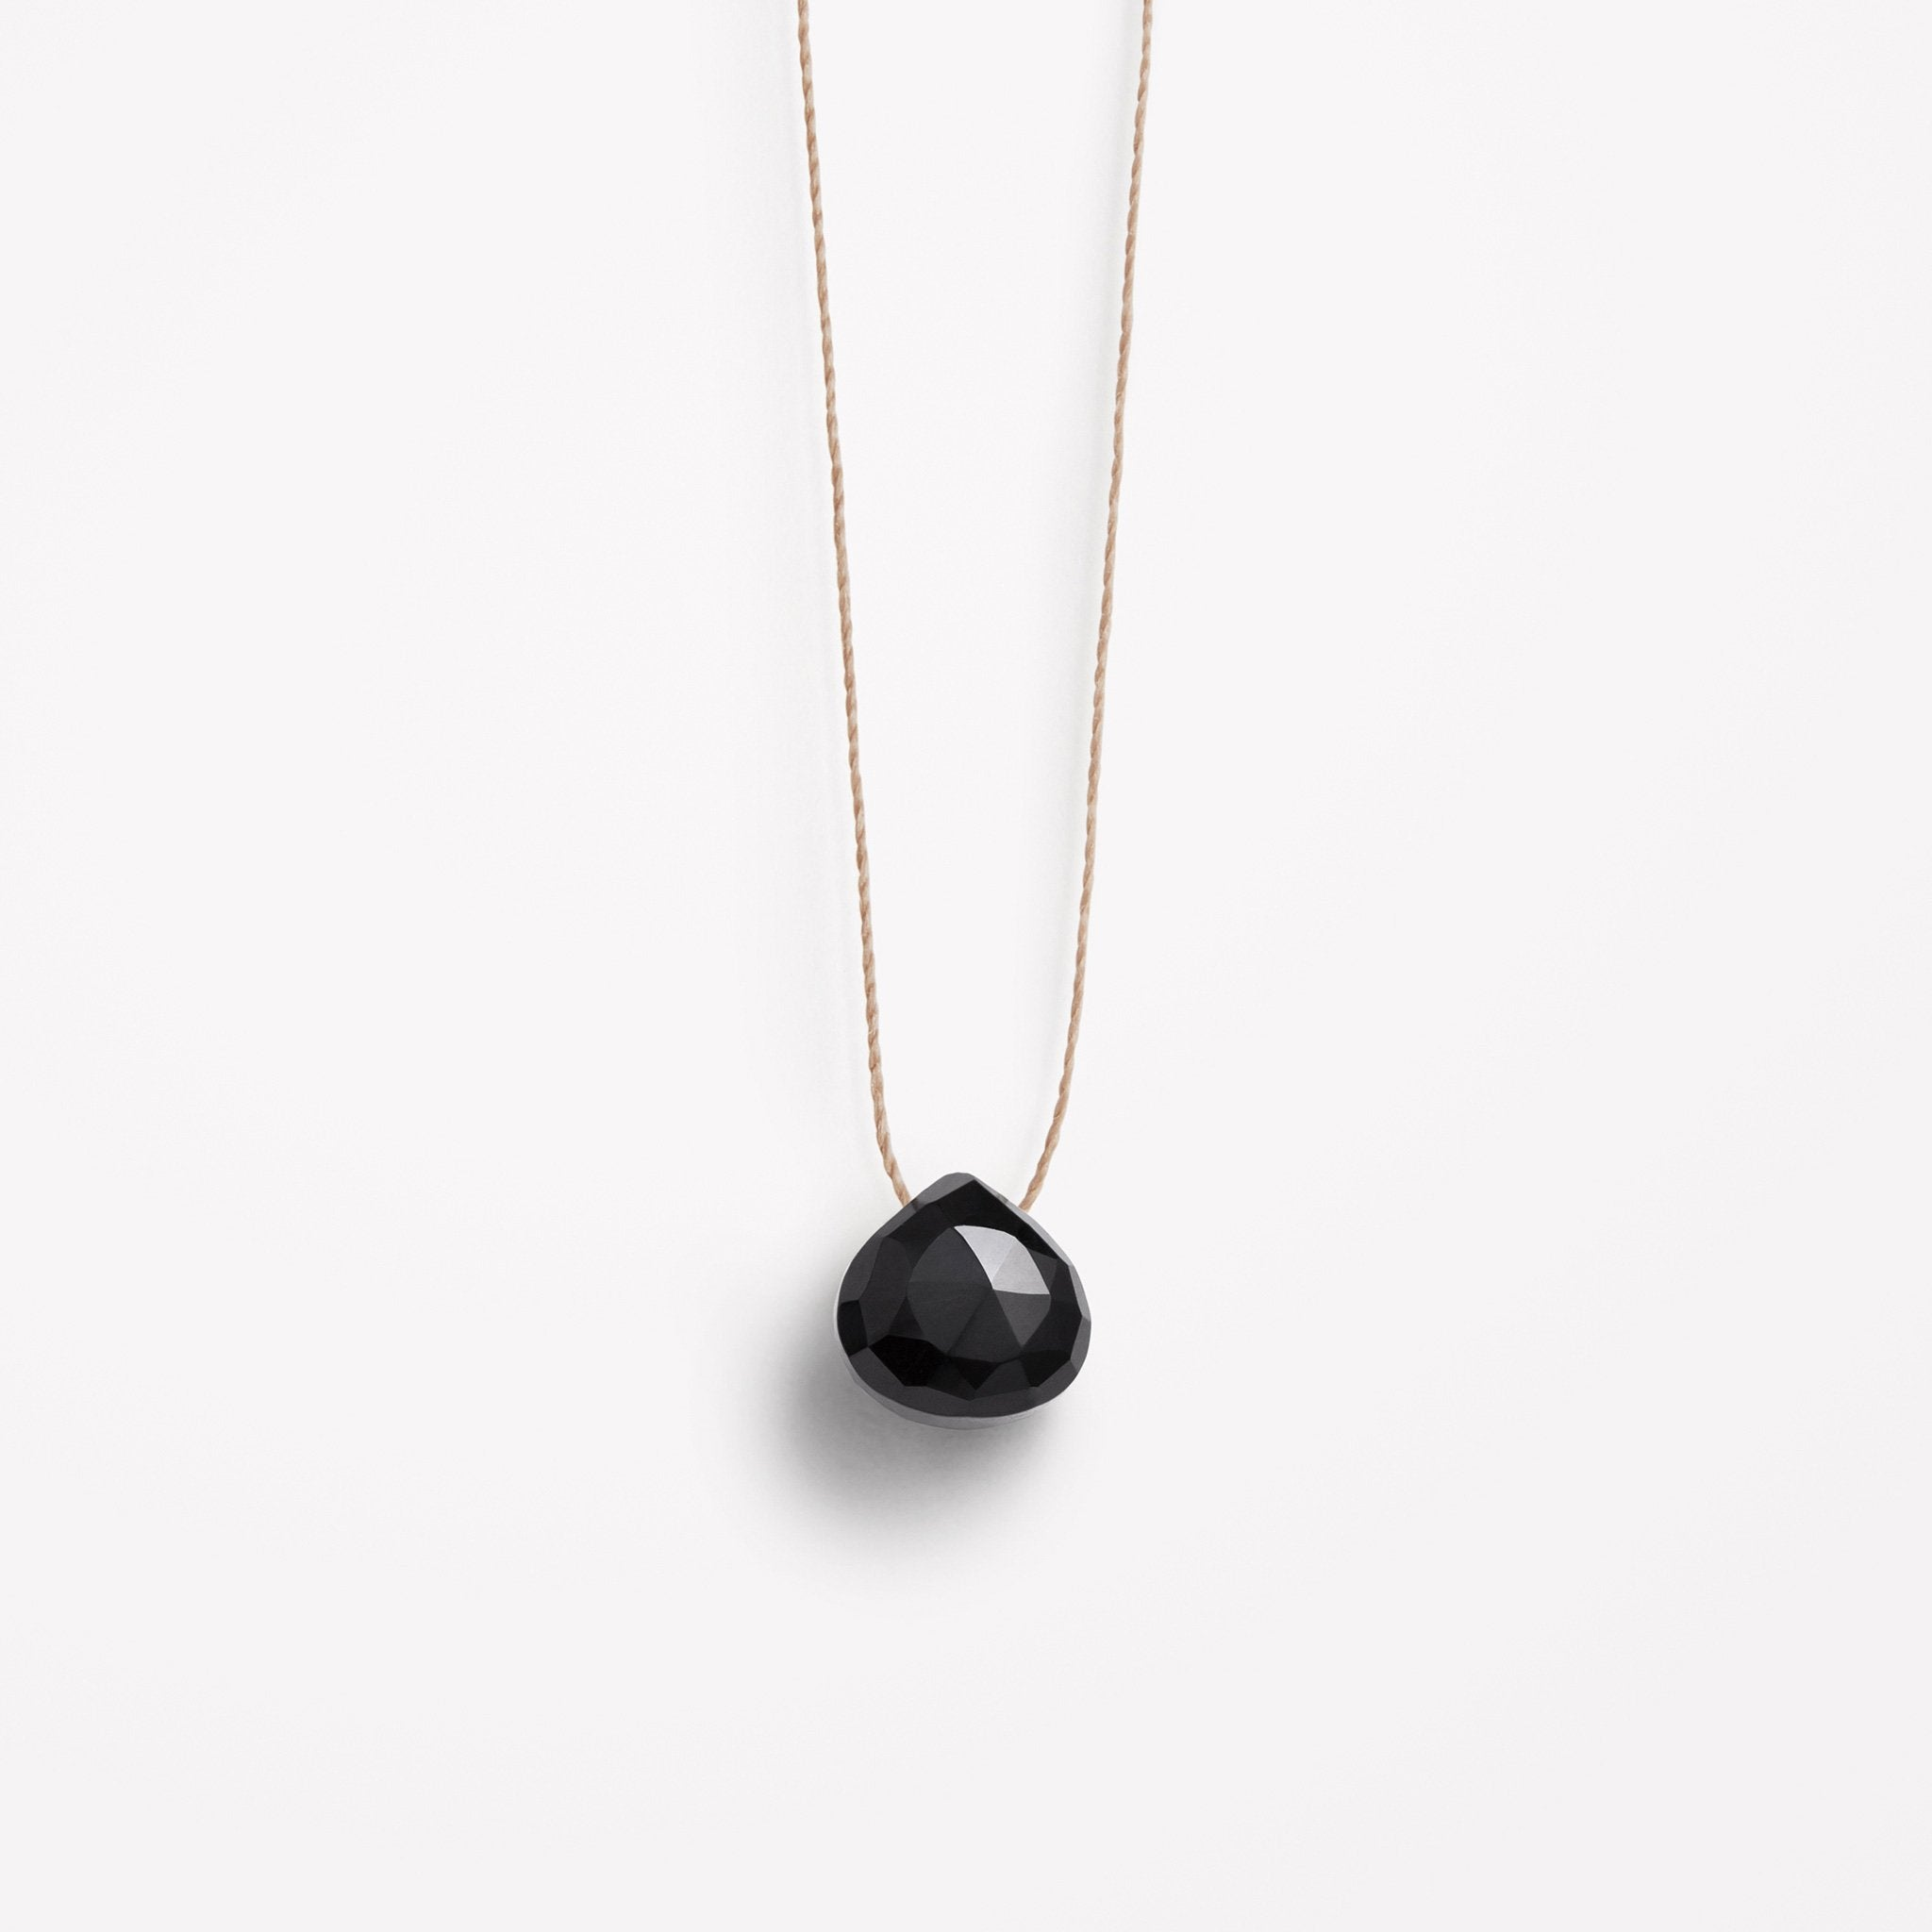 Wanderlust Life Ethically Handmade jewellery made in the UK. Minimalist gold and fine cord jewellery. black spinel fine cord necklace